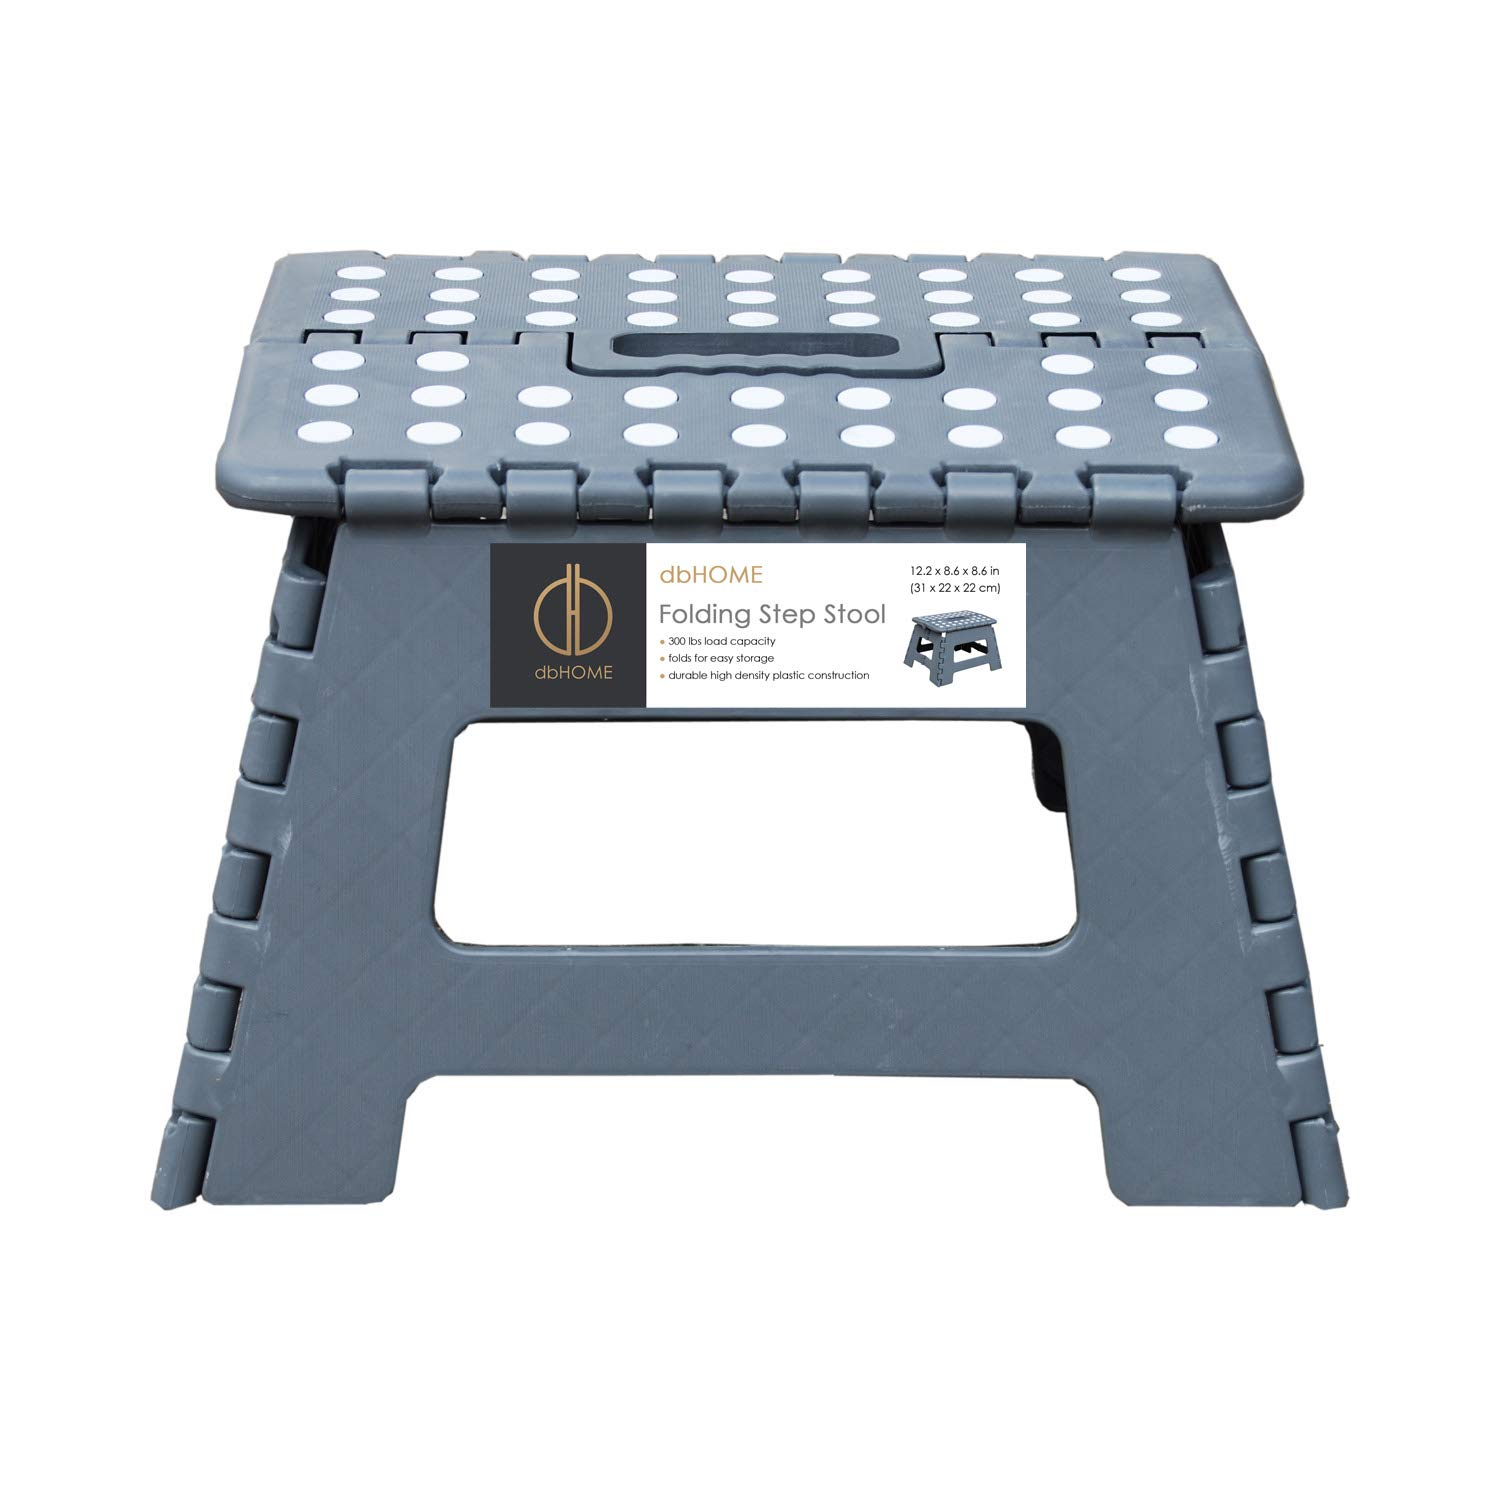 Super Db Living Folding Step Stool Grey With Handle For Kids Children And Adults Stepping Stool 12 Wide And Holds Up To 300Lbs Gray Evergreenethics Interior Chair Design Evergreenethicsorg